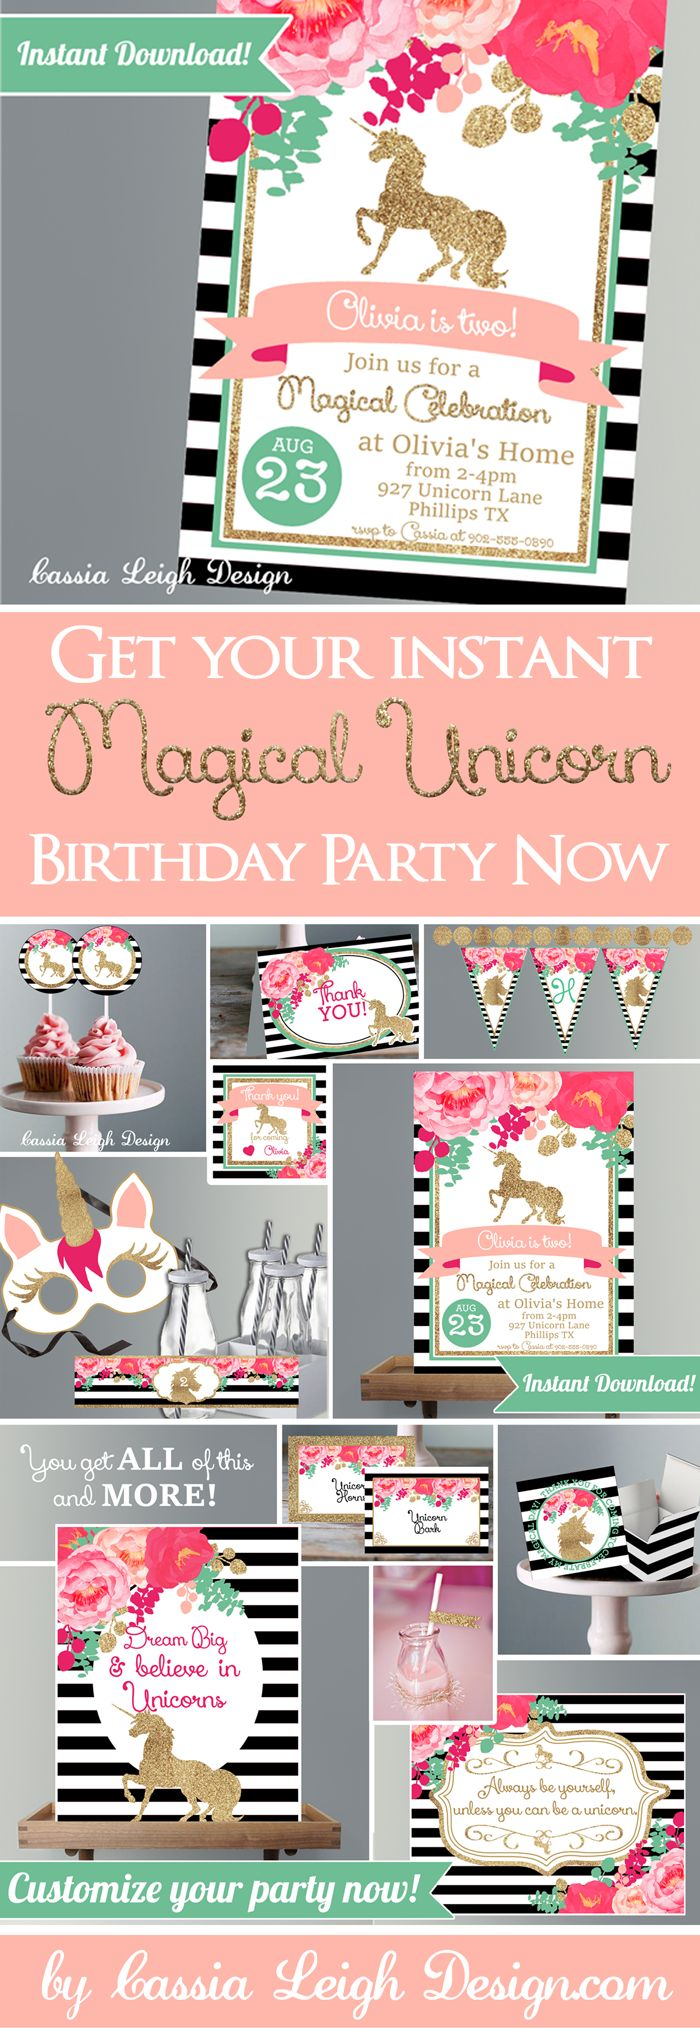 These Unicorn Birthday Party Invitations and Decorations - Pink Black and White with Glitter are not only UNIQUE and beautiful, but they can be INSTANTLY downloaded, so your Unicorn Birthday can be both stunning AND simple to host! ►►INSTANT DOWNLOAD!! EDIT WITH LATEST VERSION OF ADOBE READER!! PRINT AT HOME!! This listing is for the digital file of the full printable collection of the Unicorn Birthday Party Invitations and Decorations - Pink Black and White with Glitter - Unicorn…